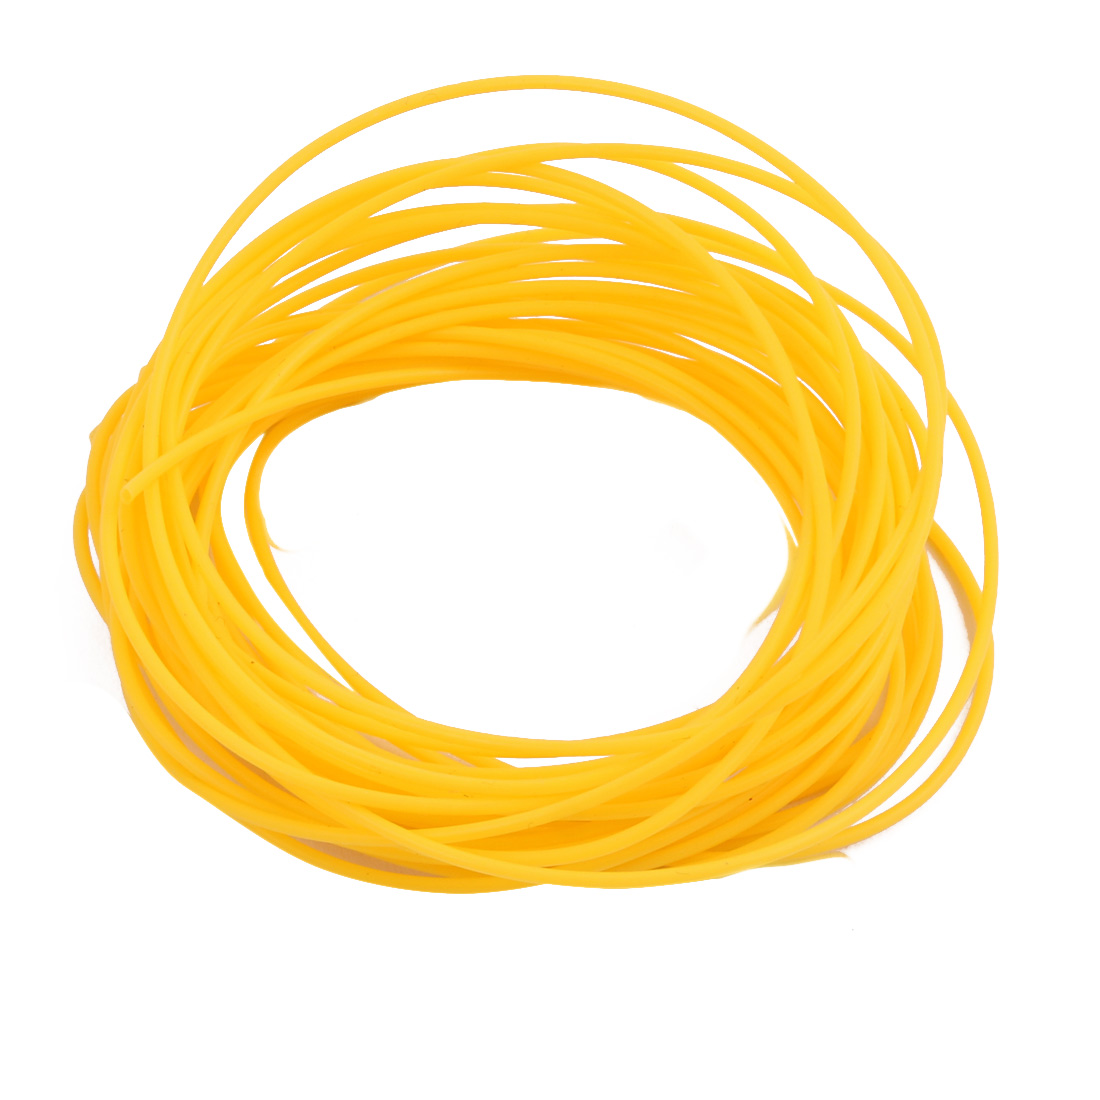 0.96mmx1.26mm PTFE Resistant High Temperature Yellow Tubing 5 Meters 16.4Ft